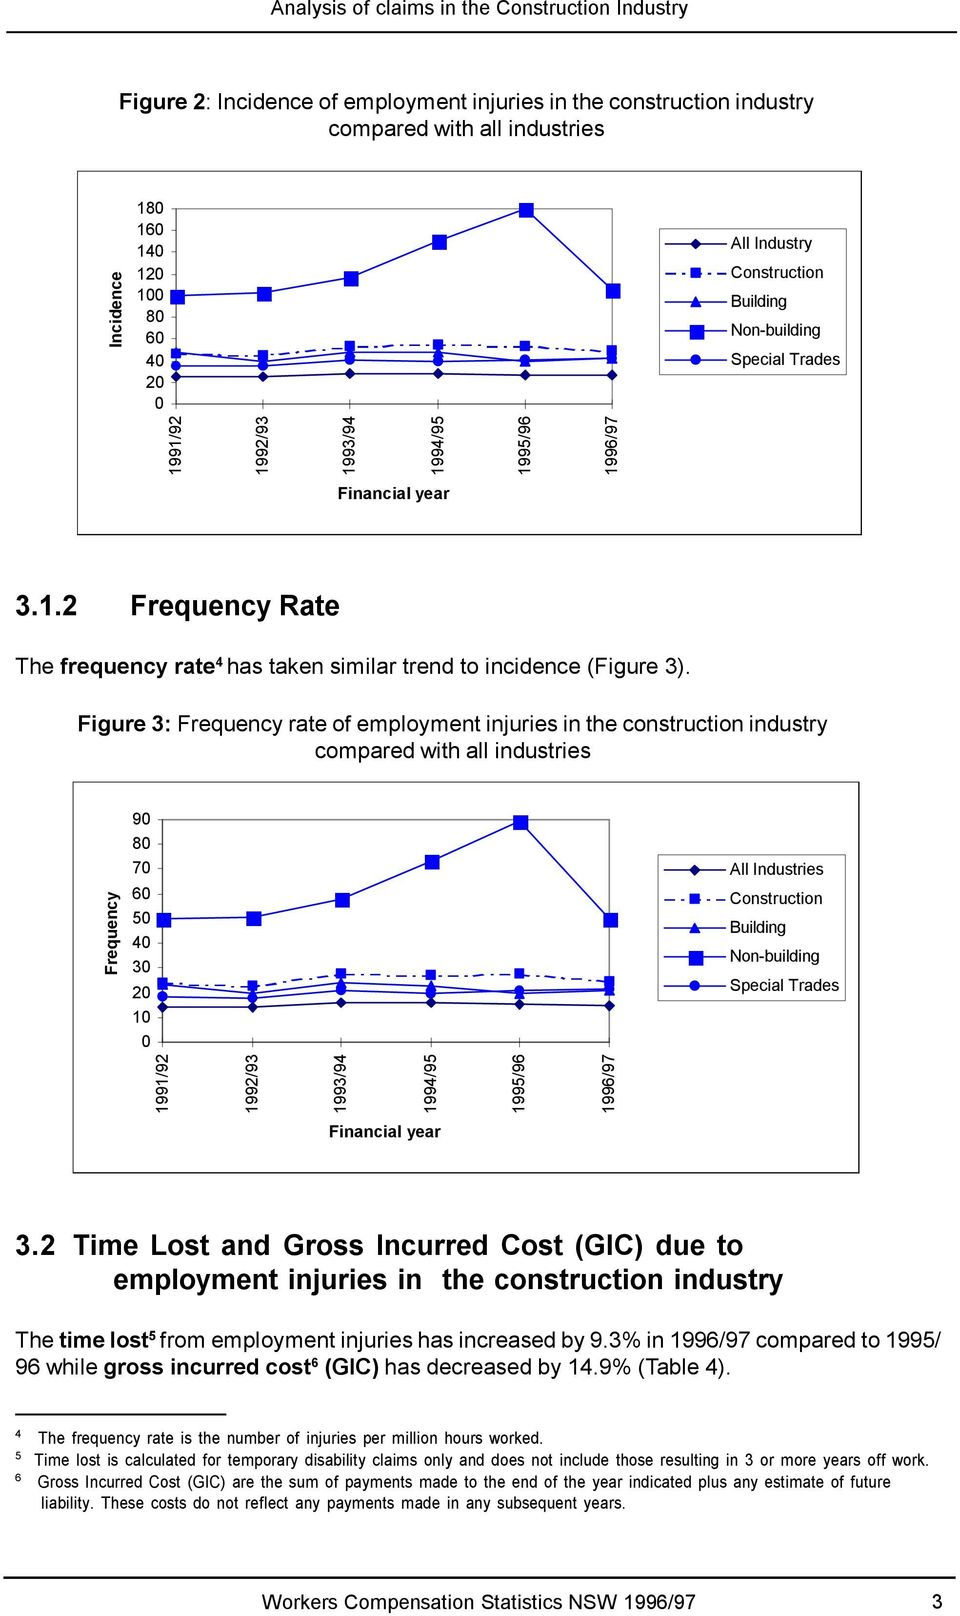 Figure 3: Frequency rate of employment injuries in the construction industry compared with all industries Frequency 90 80 70 60 50 40 30 20 10 0 All Industries Construction Building Non-building